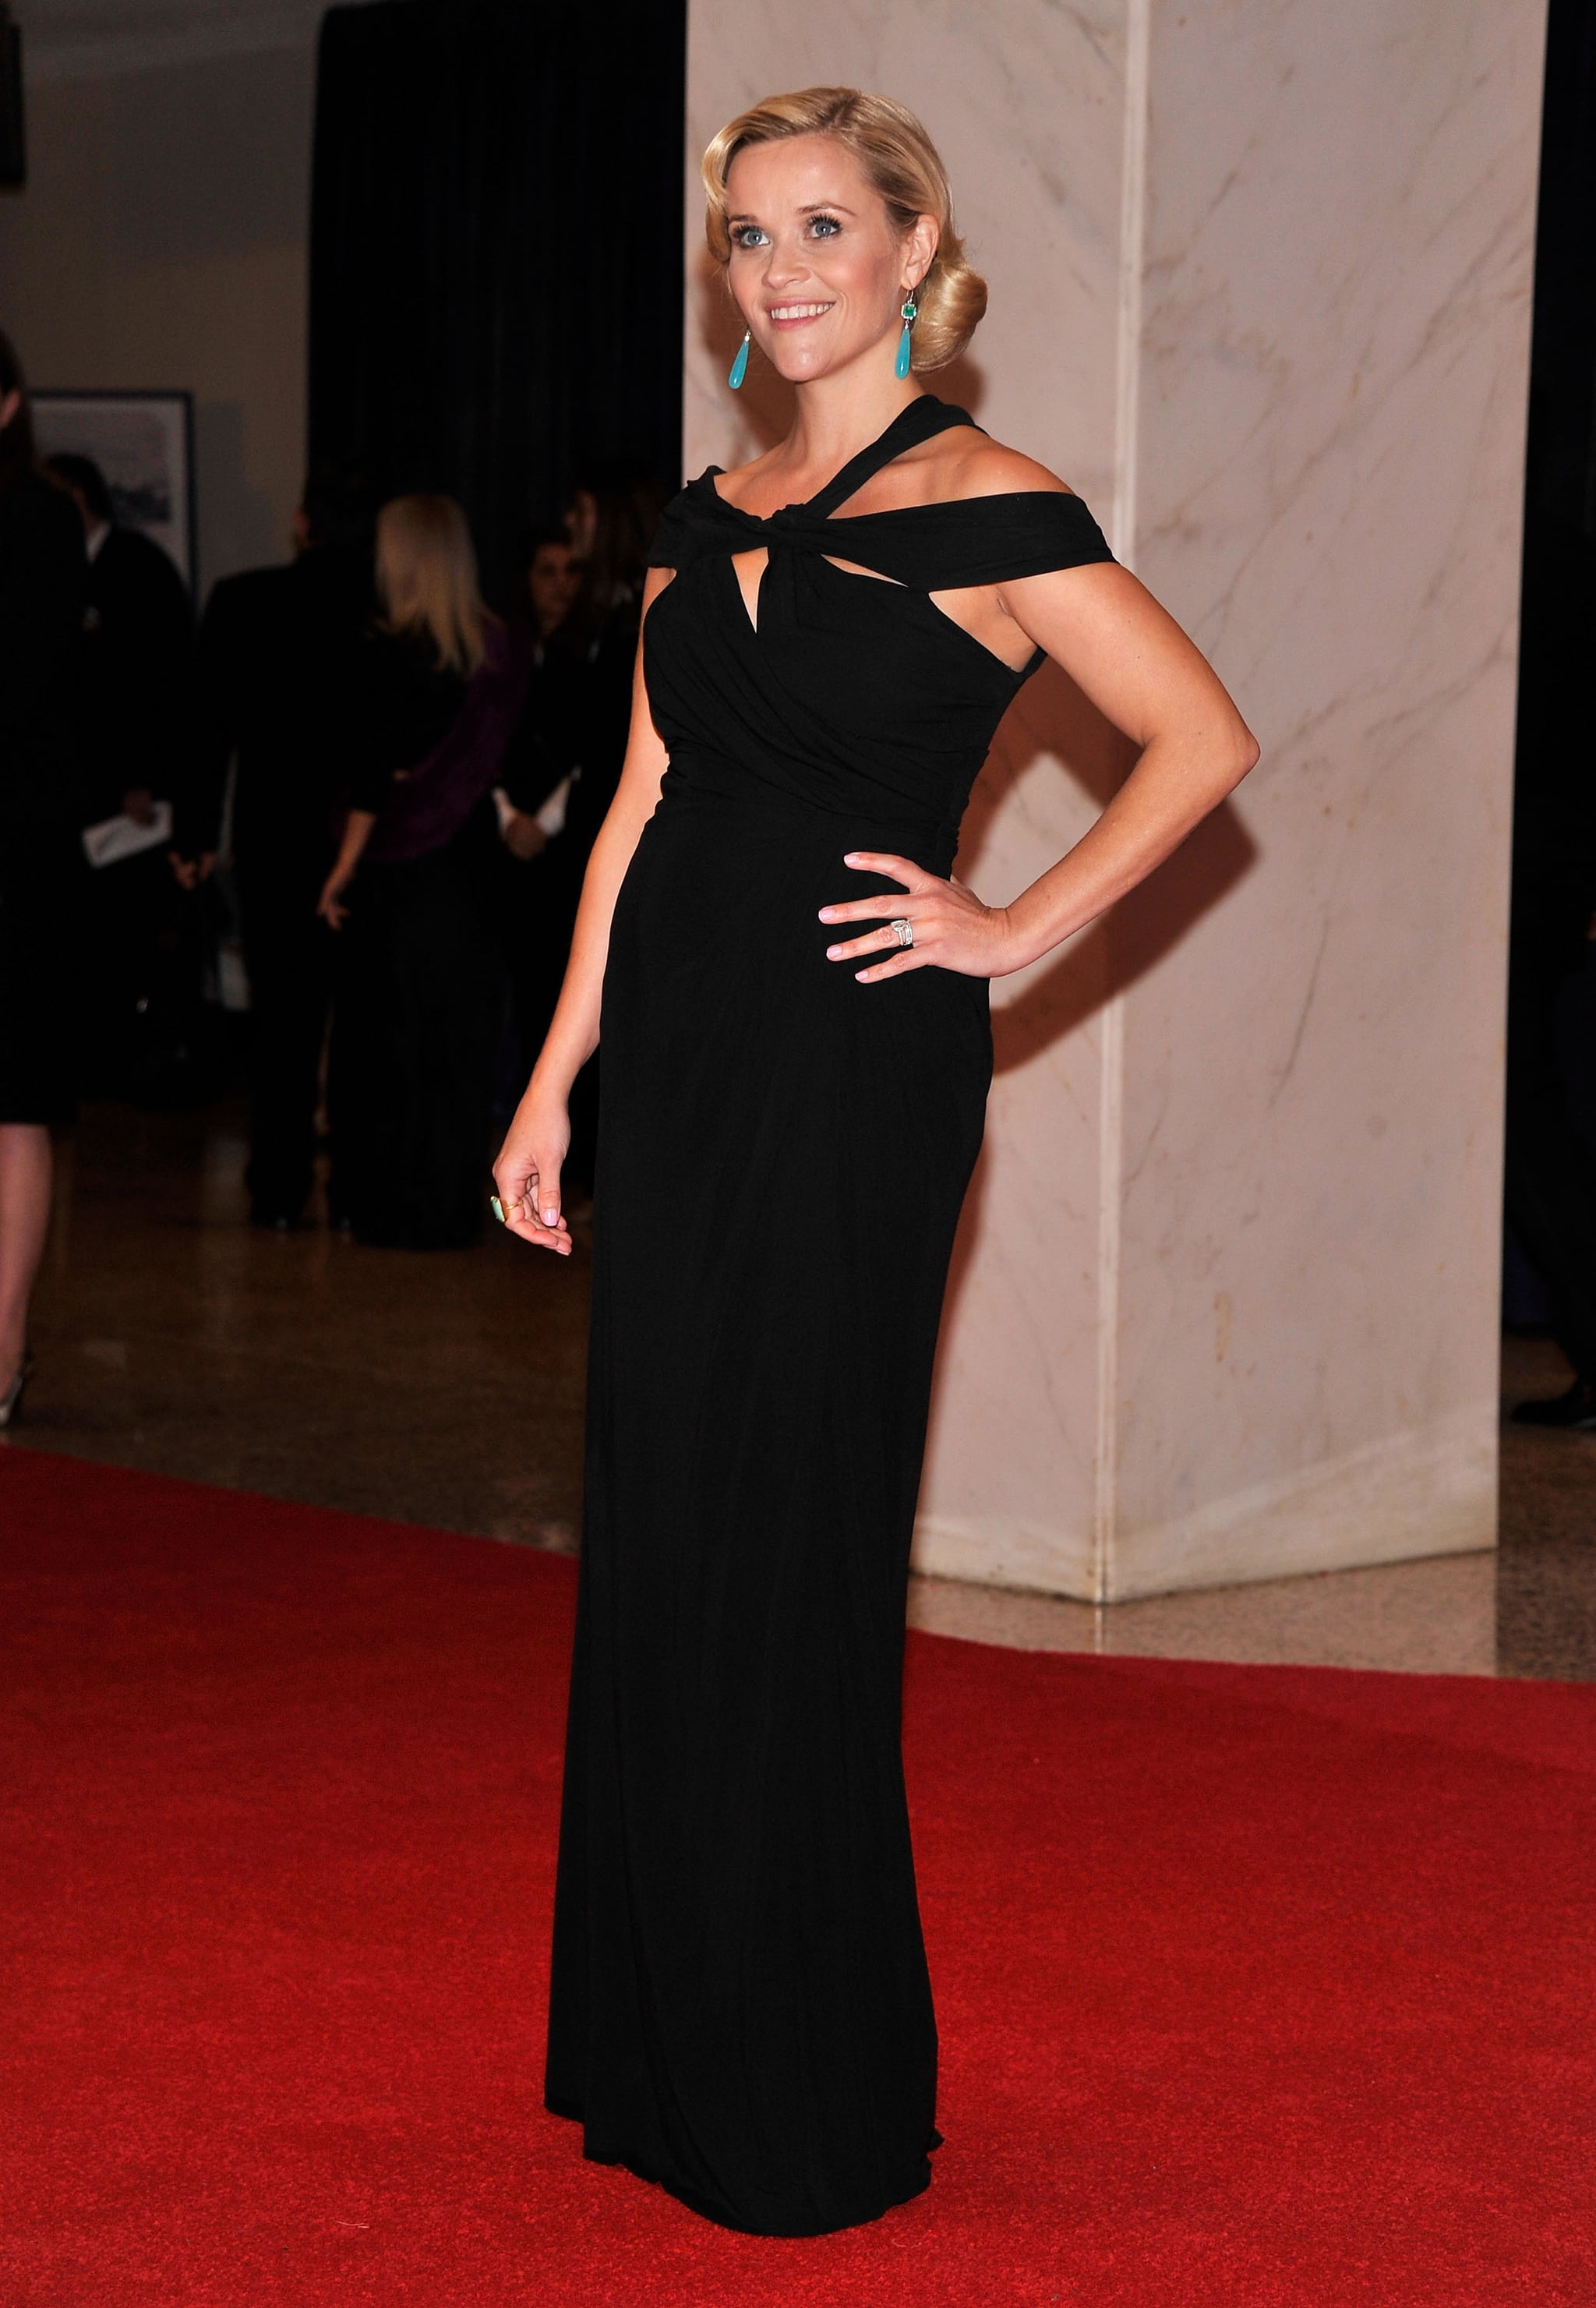 Reese Witherspoon in Monique Lhuillier at 2012 White House Correspondents' Dinner